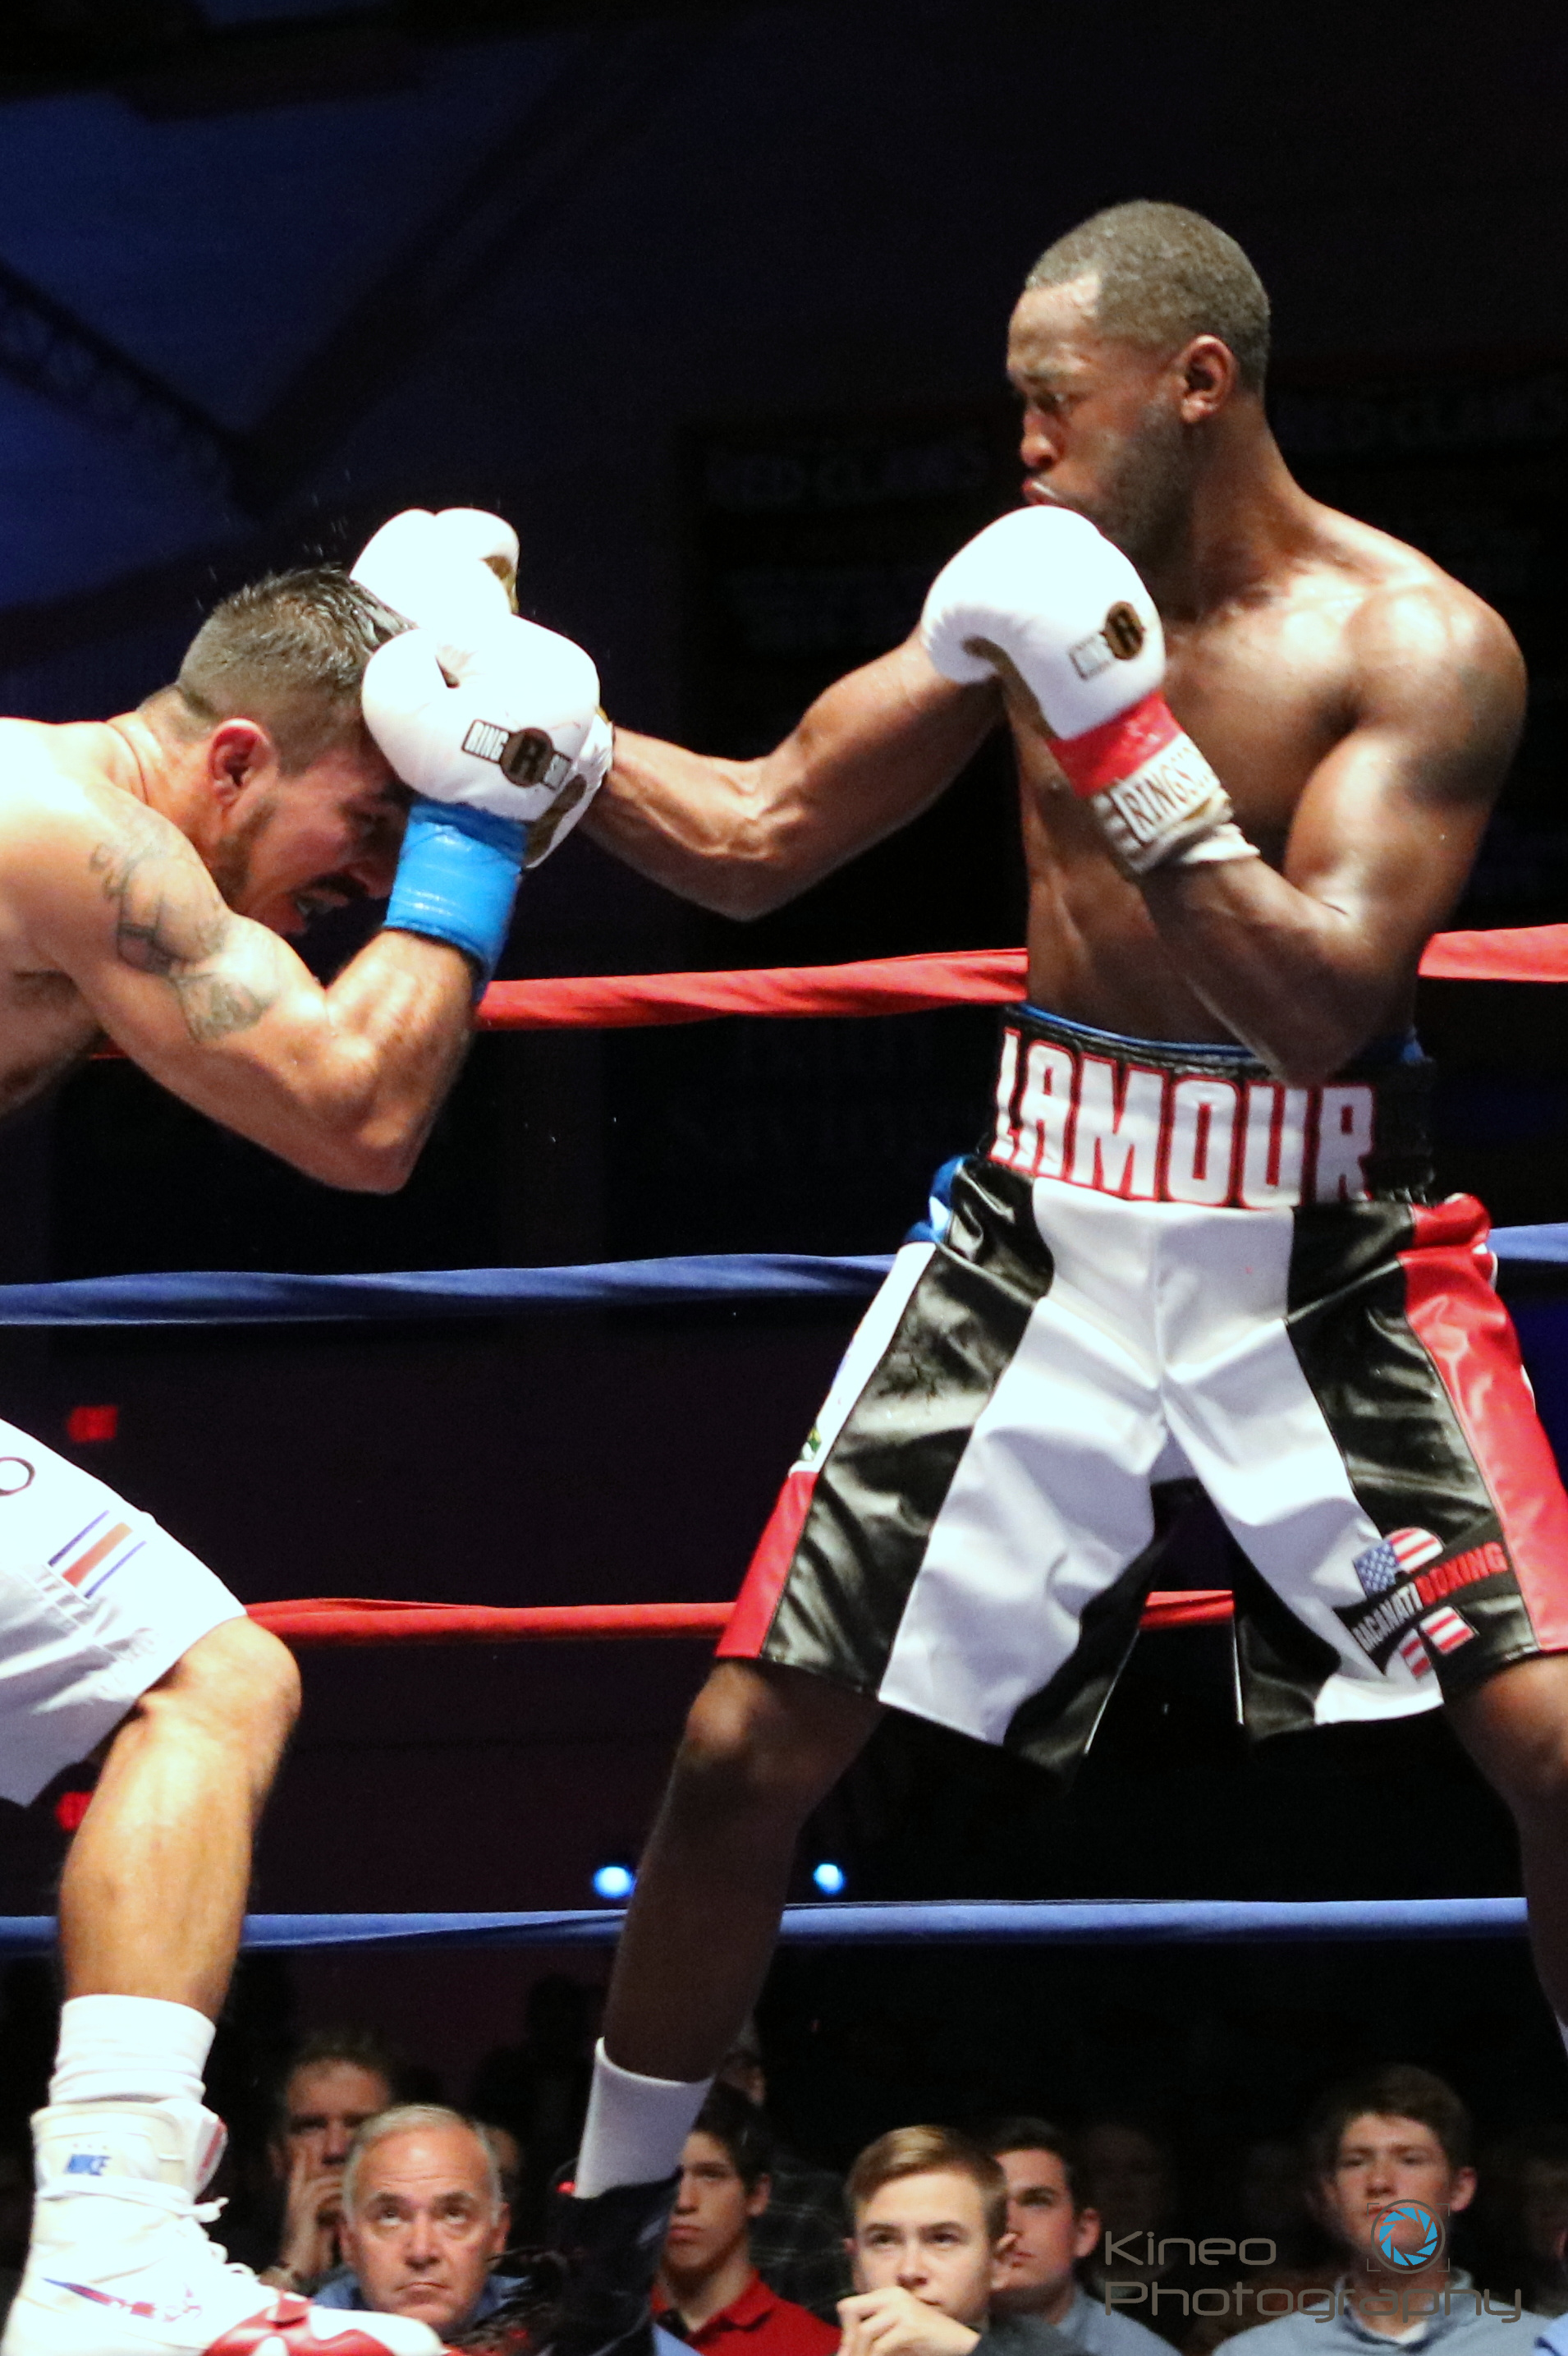 Portland Boxing Club's Russell Lamour, Jr. (right) and Jamie Barboza of San Jose, Costa Rica.  Photo courtesy of Kineo Photography.